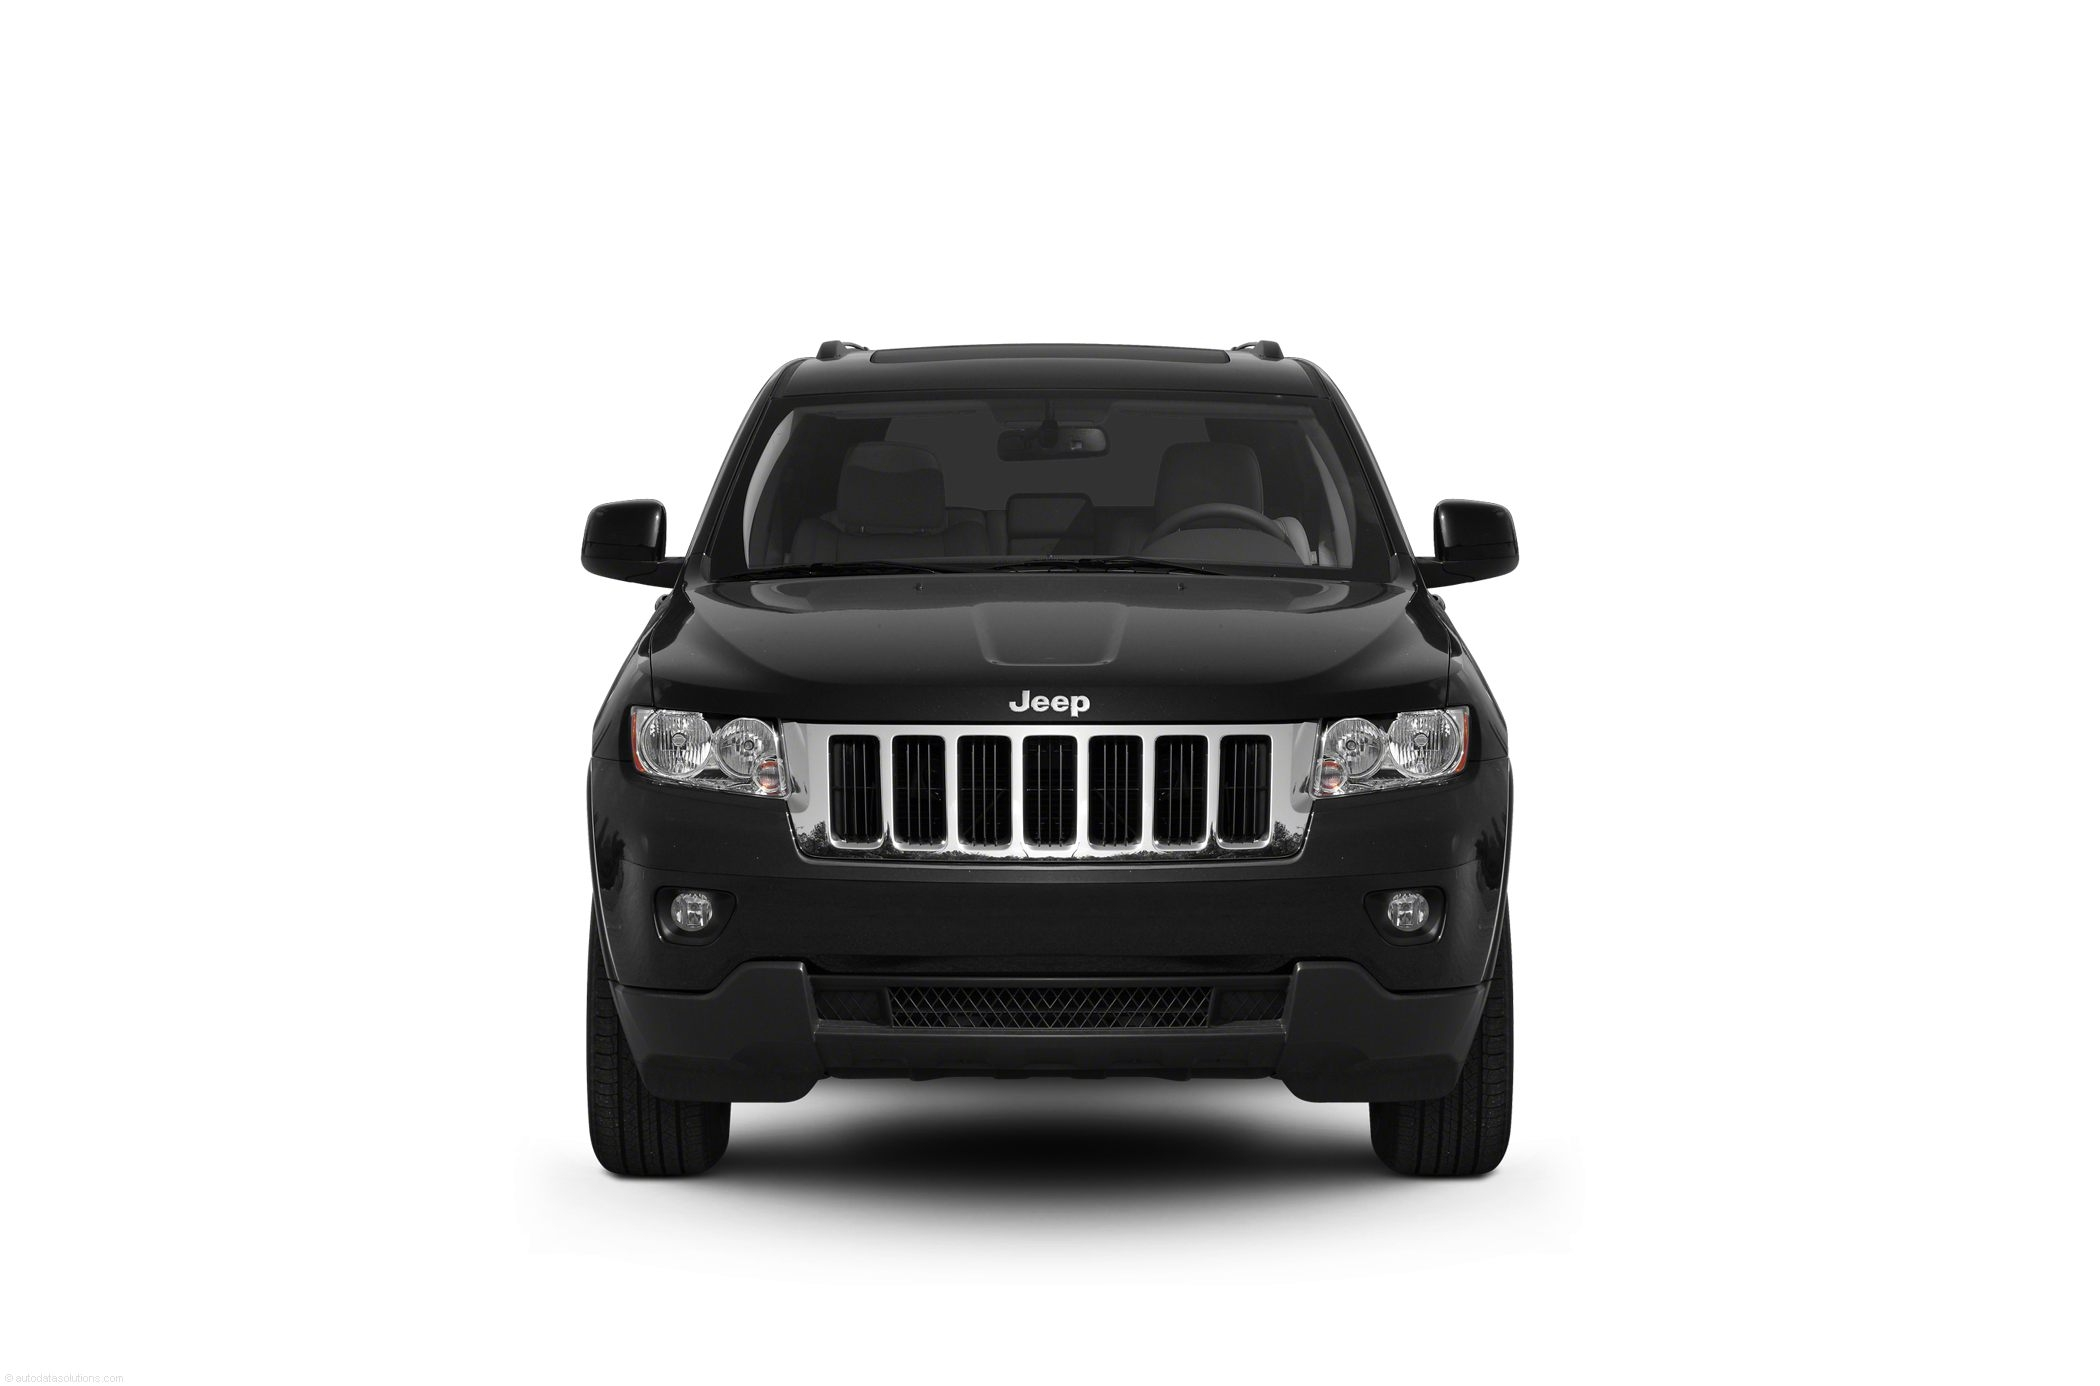 jeep grand cherokee invoice price 2011 jeep grand cherokee price reviews safety the hybrid technology 2100 X 1386